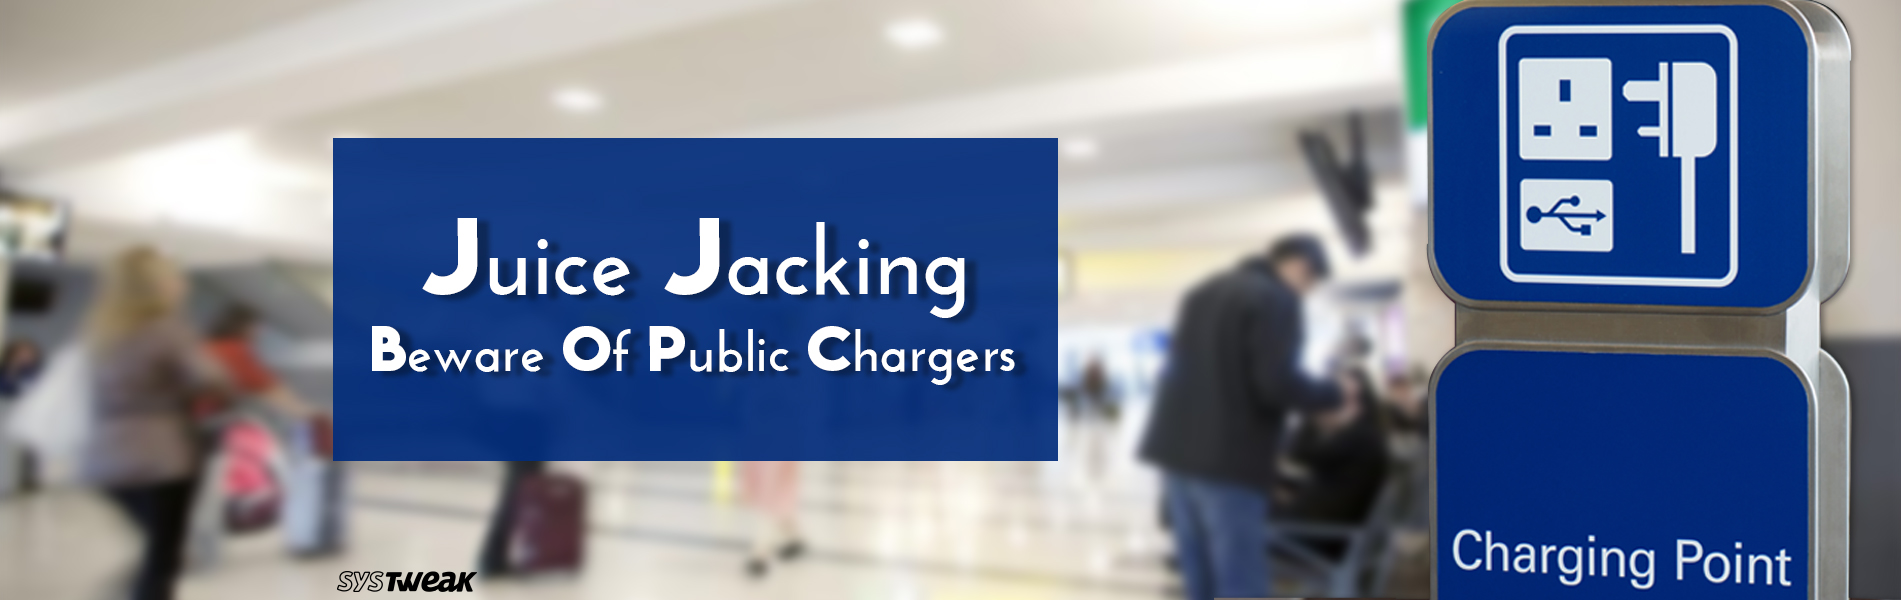 Juice Jacking: Why You Should Avoid Public Chargers?